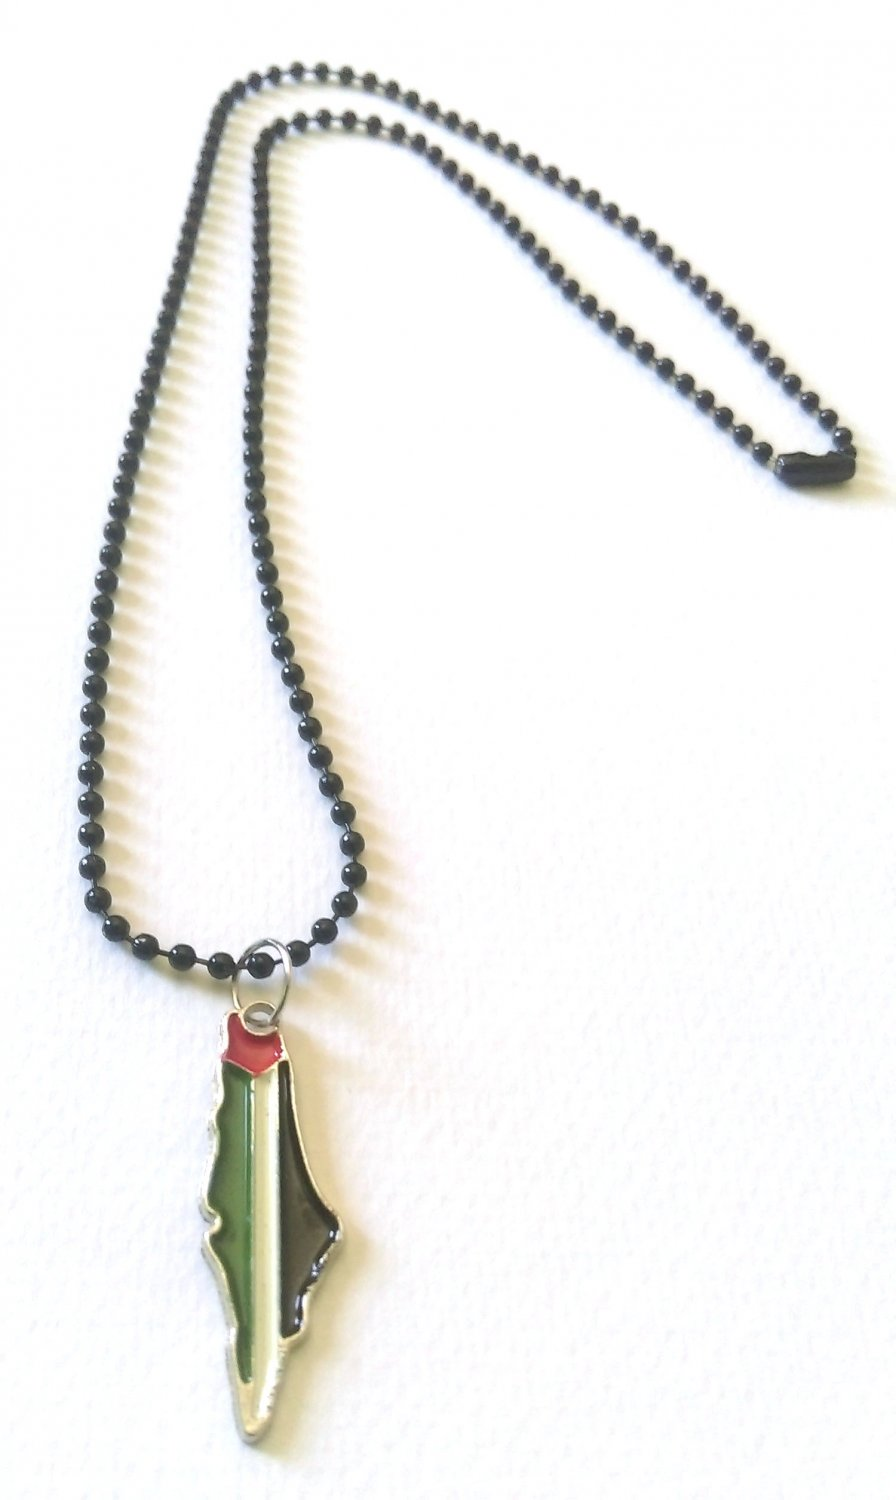 Unisex Palestine Metal Colored Map with Metal Necklace, Black 50 cm Necklace